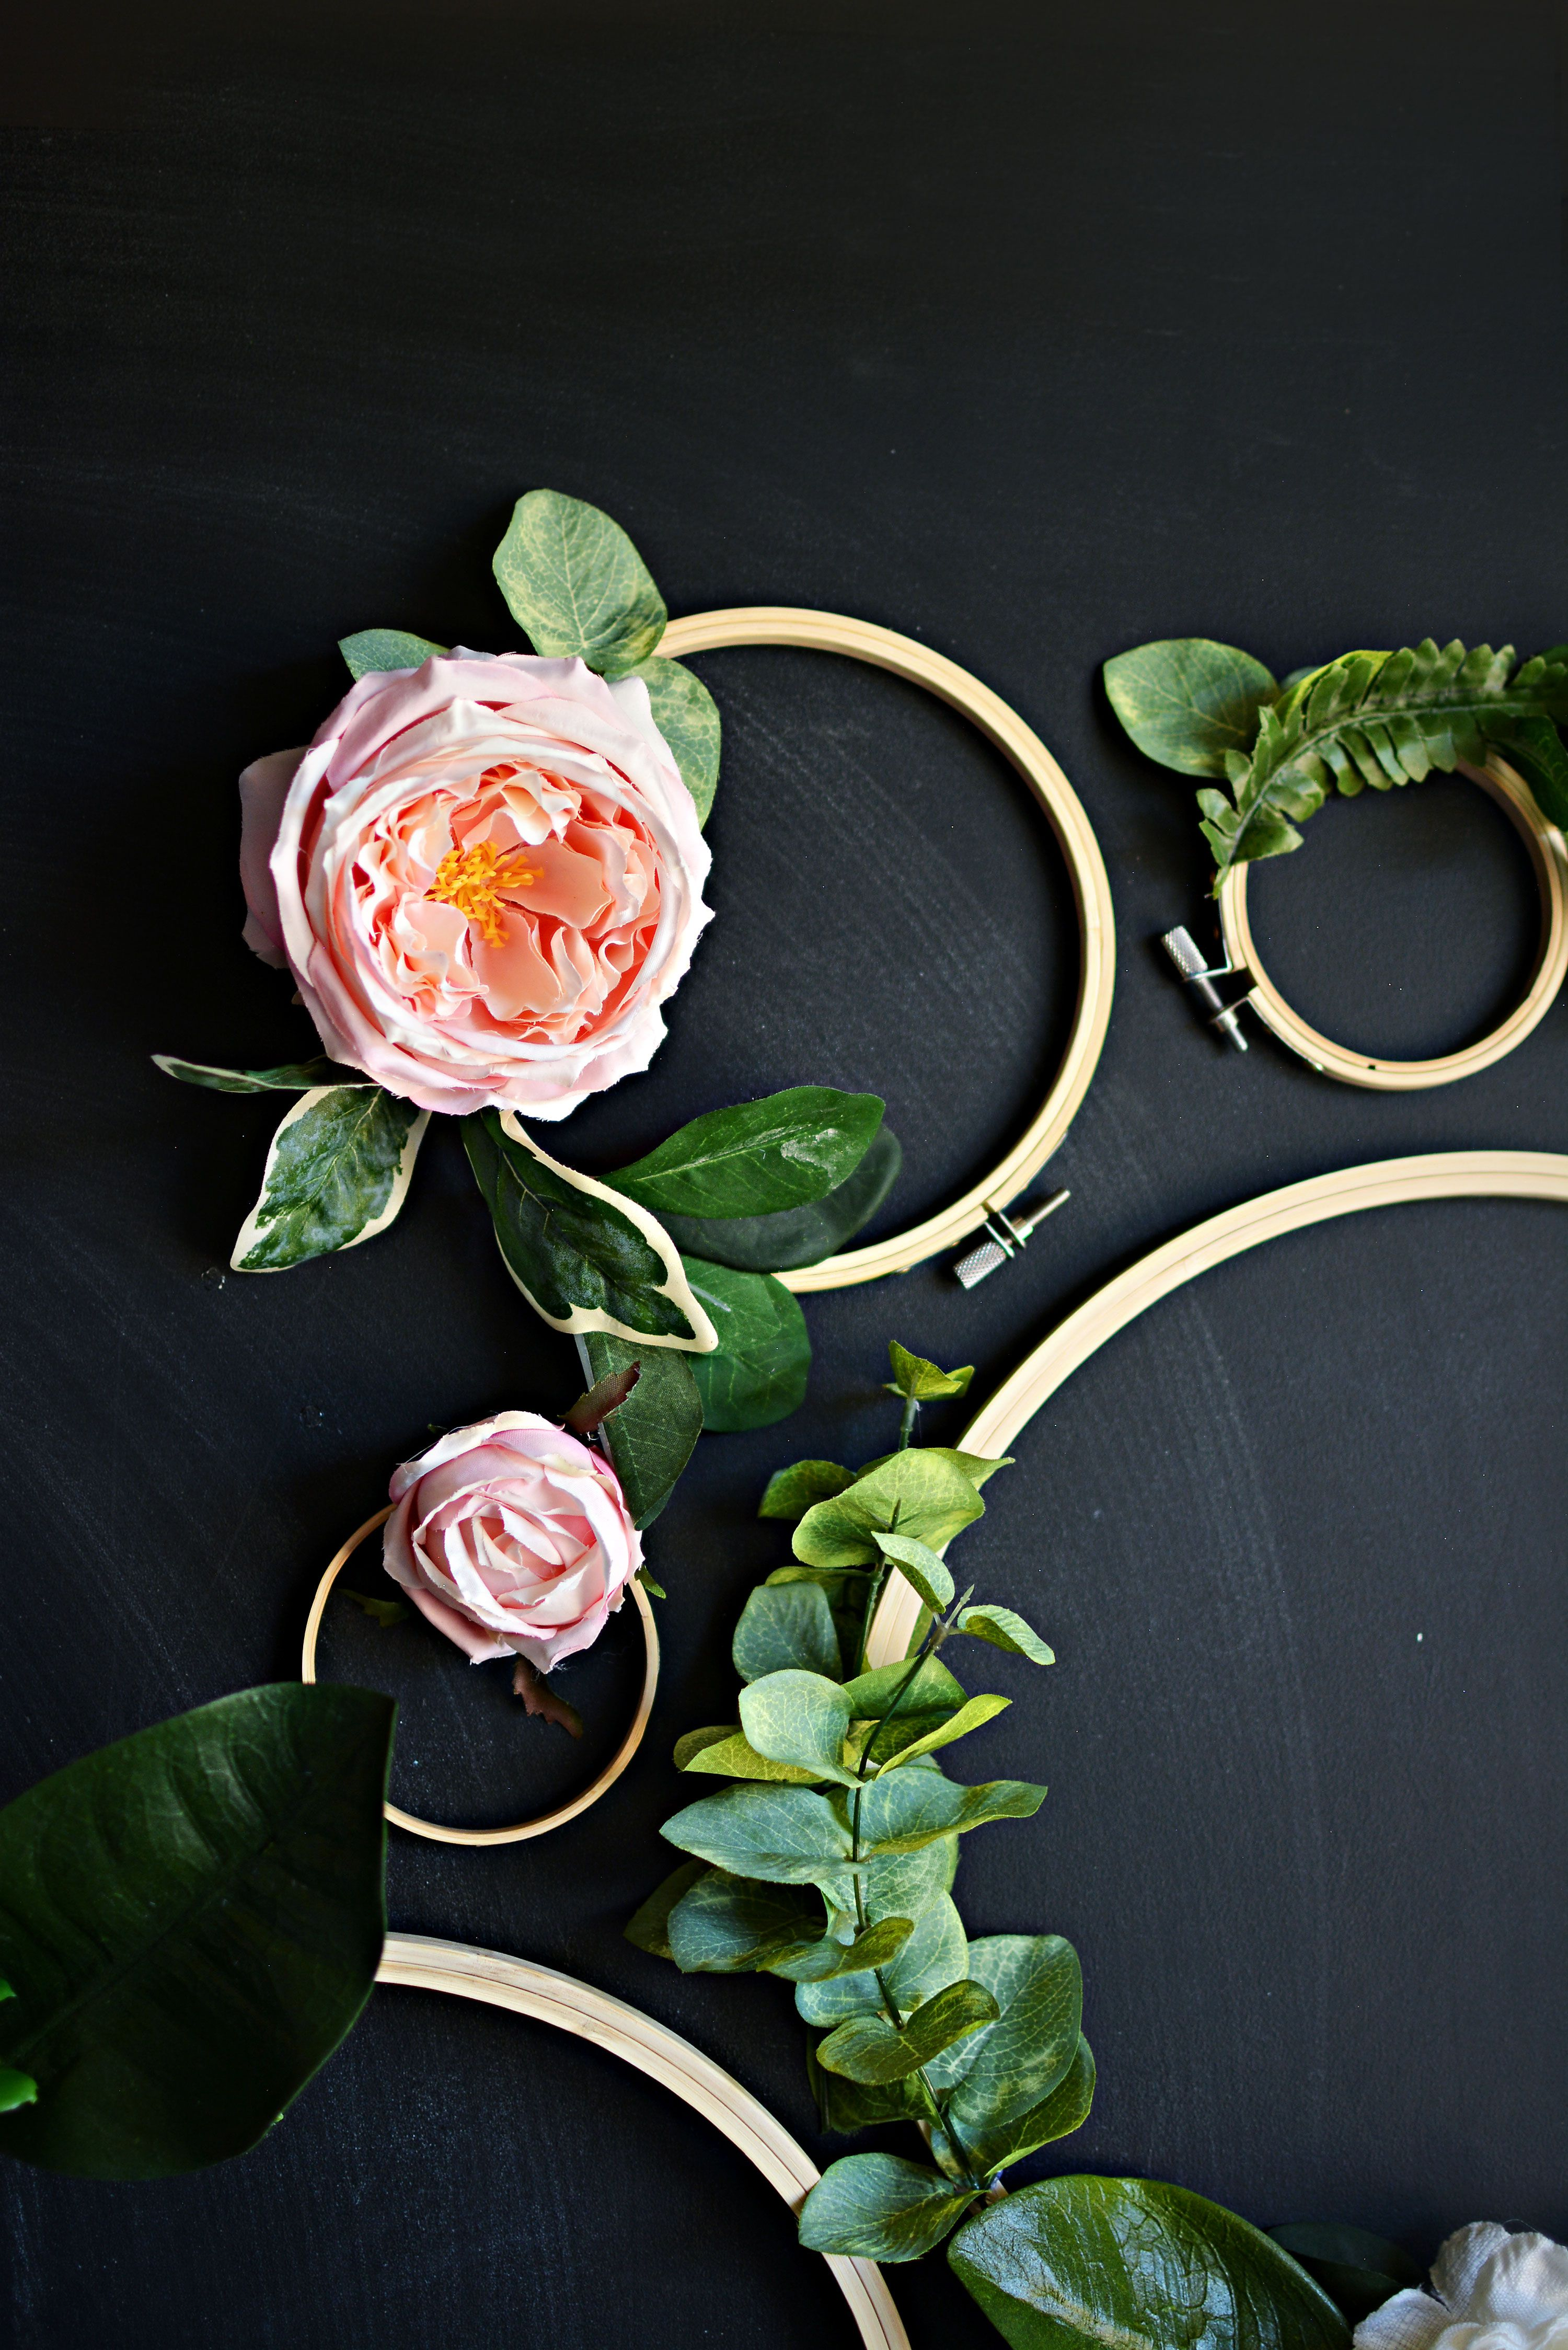 Desktop diy wedding wreaths for mobile hd pics post at little inspiration this monthus challenge as part of